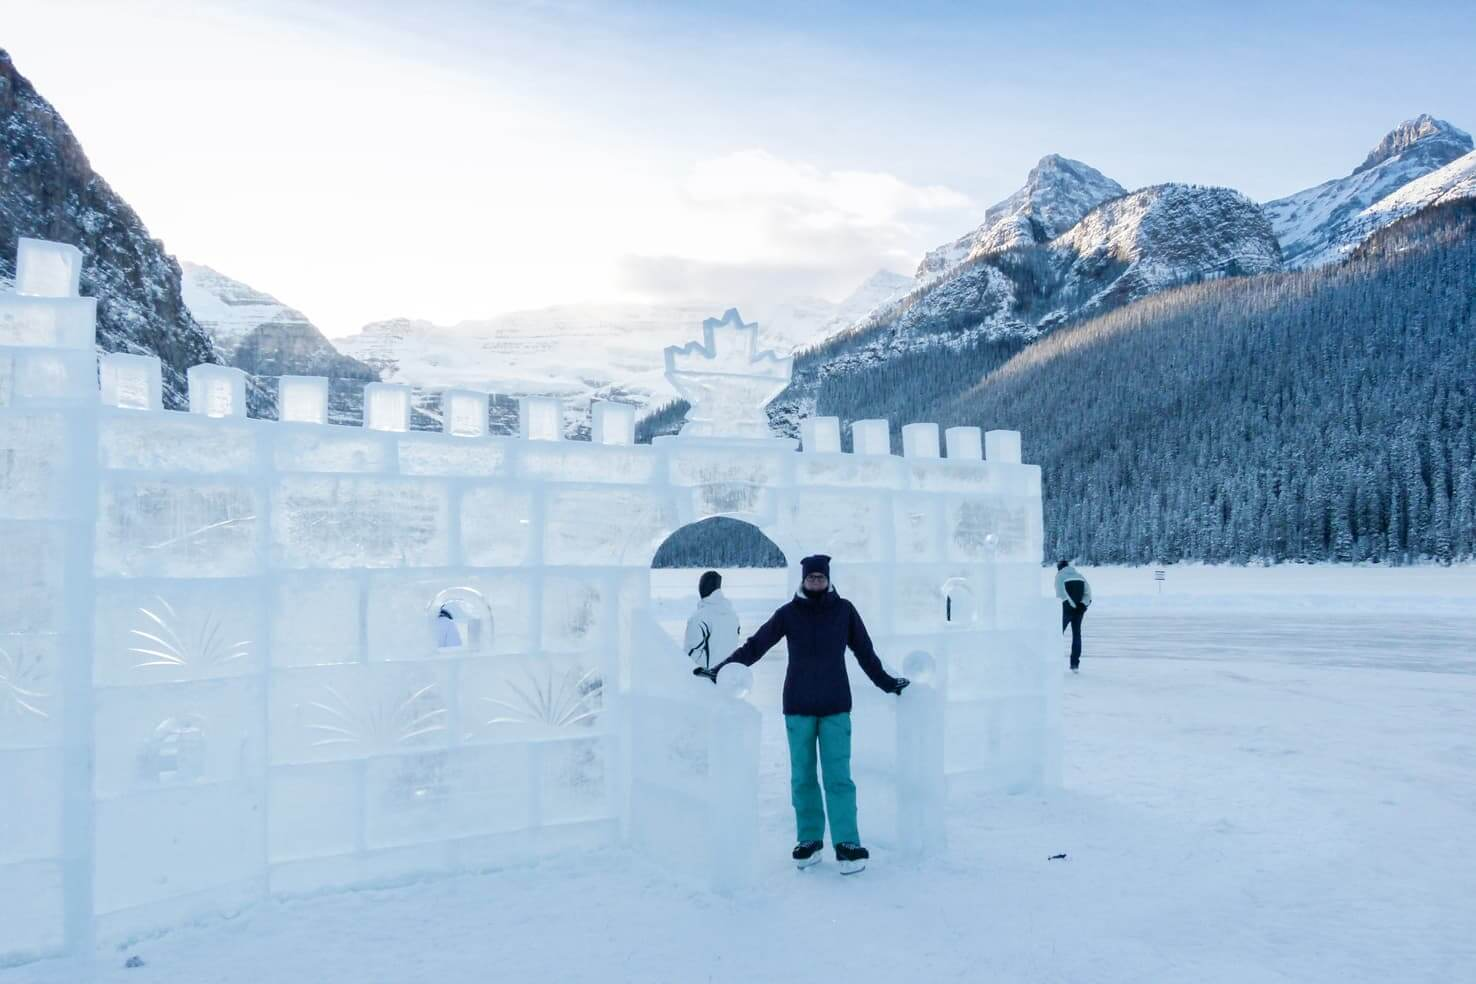 100 best things to do in Banff National Park, Canada - See ice castle & sculptures in Lake Louise